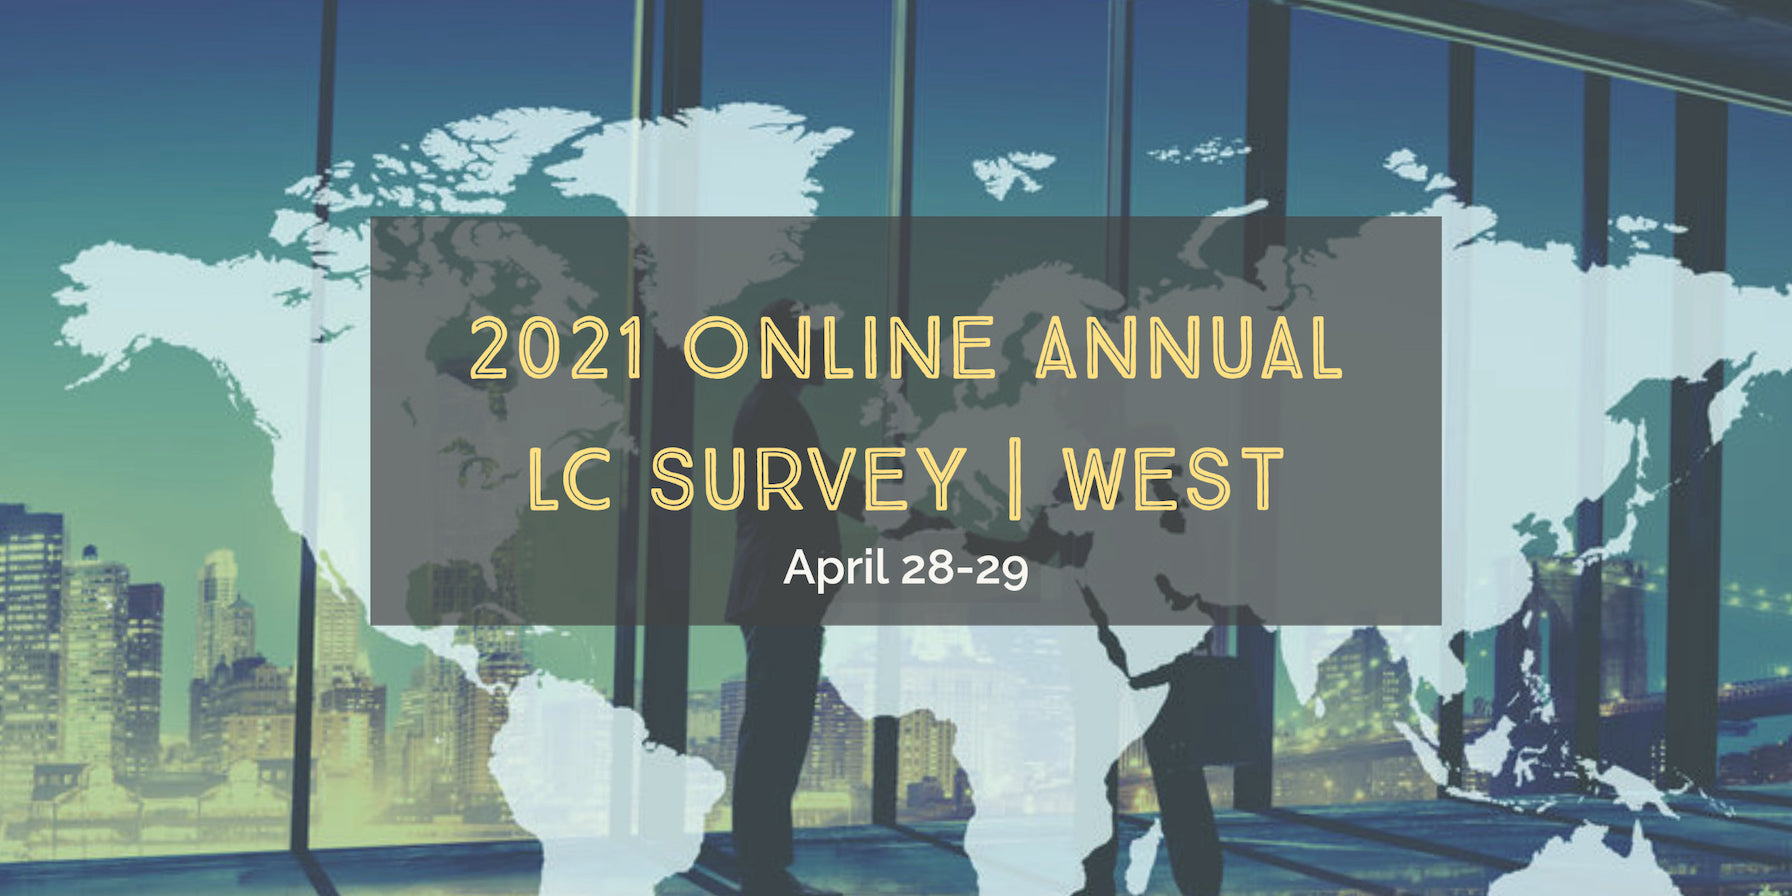 2021 Online Annual LC Survey West | Americas & Europe | 7CPD